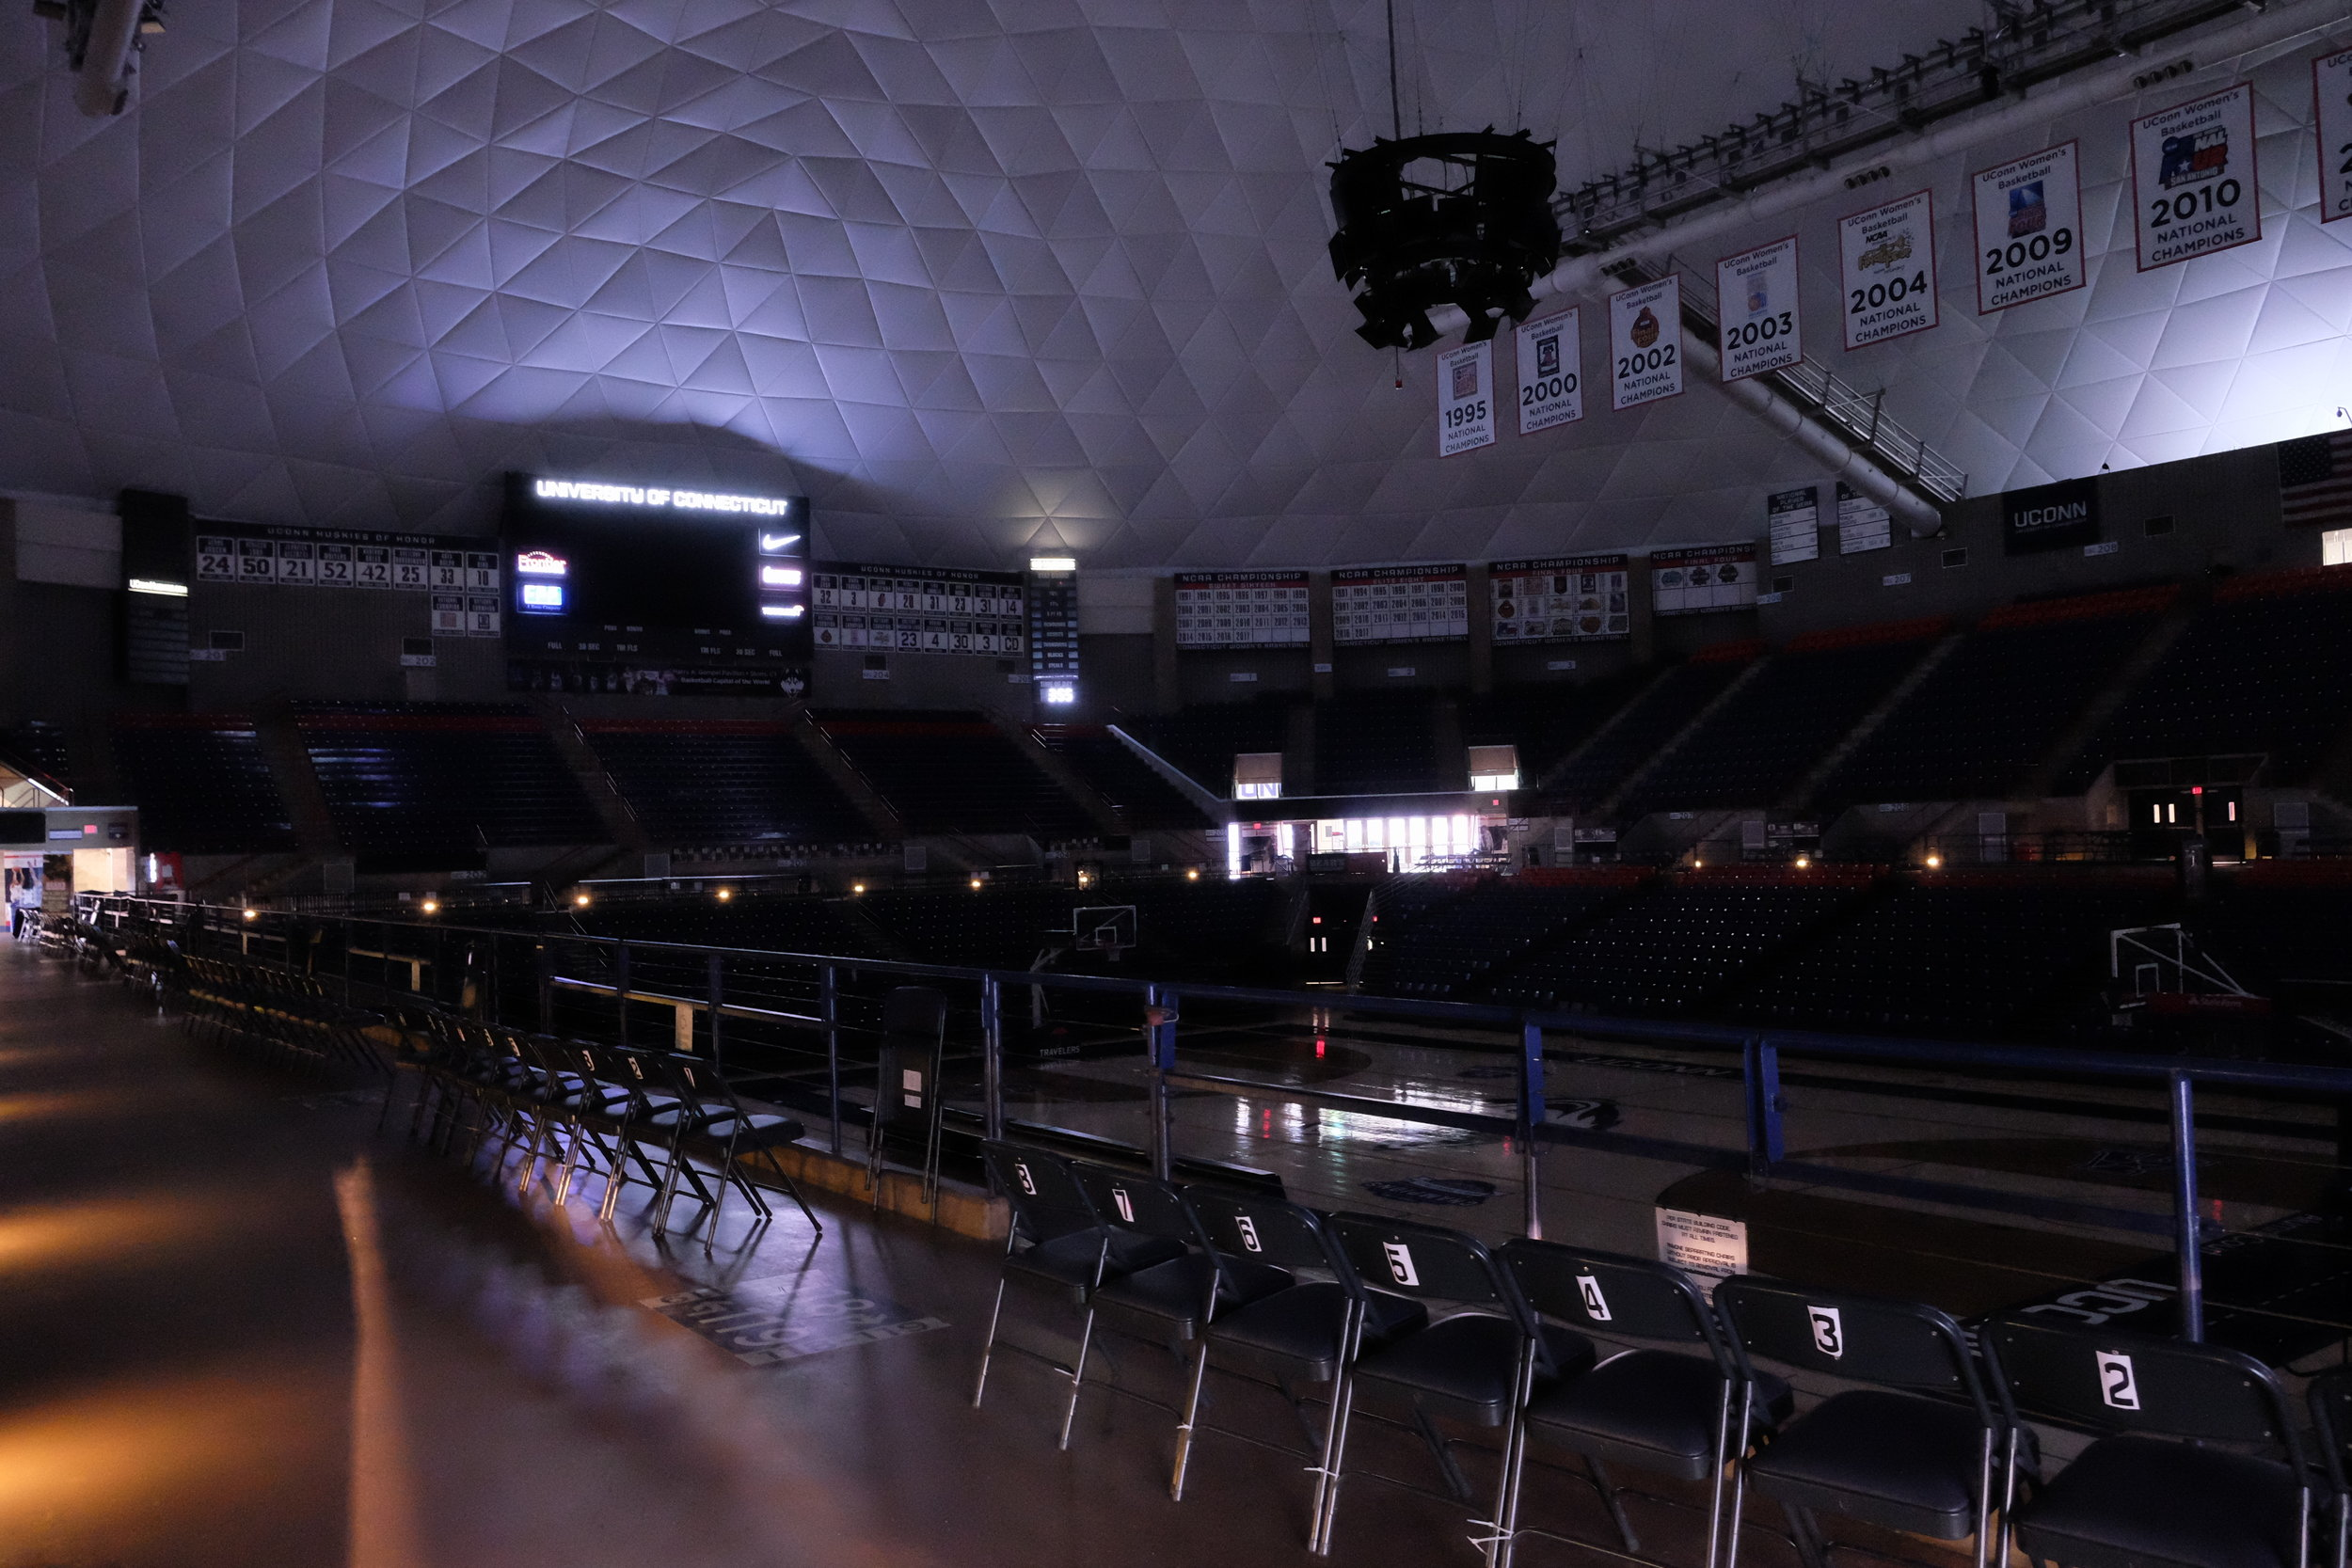 And when the dust settles, and the scores are recorded, Gampel returns to its quiet interior; waiting for the next event.